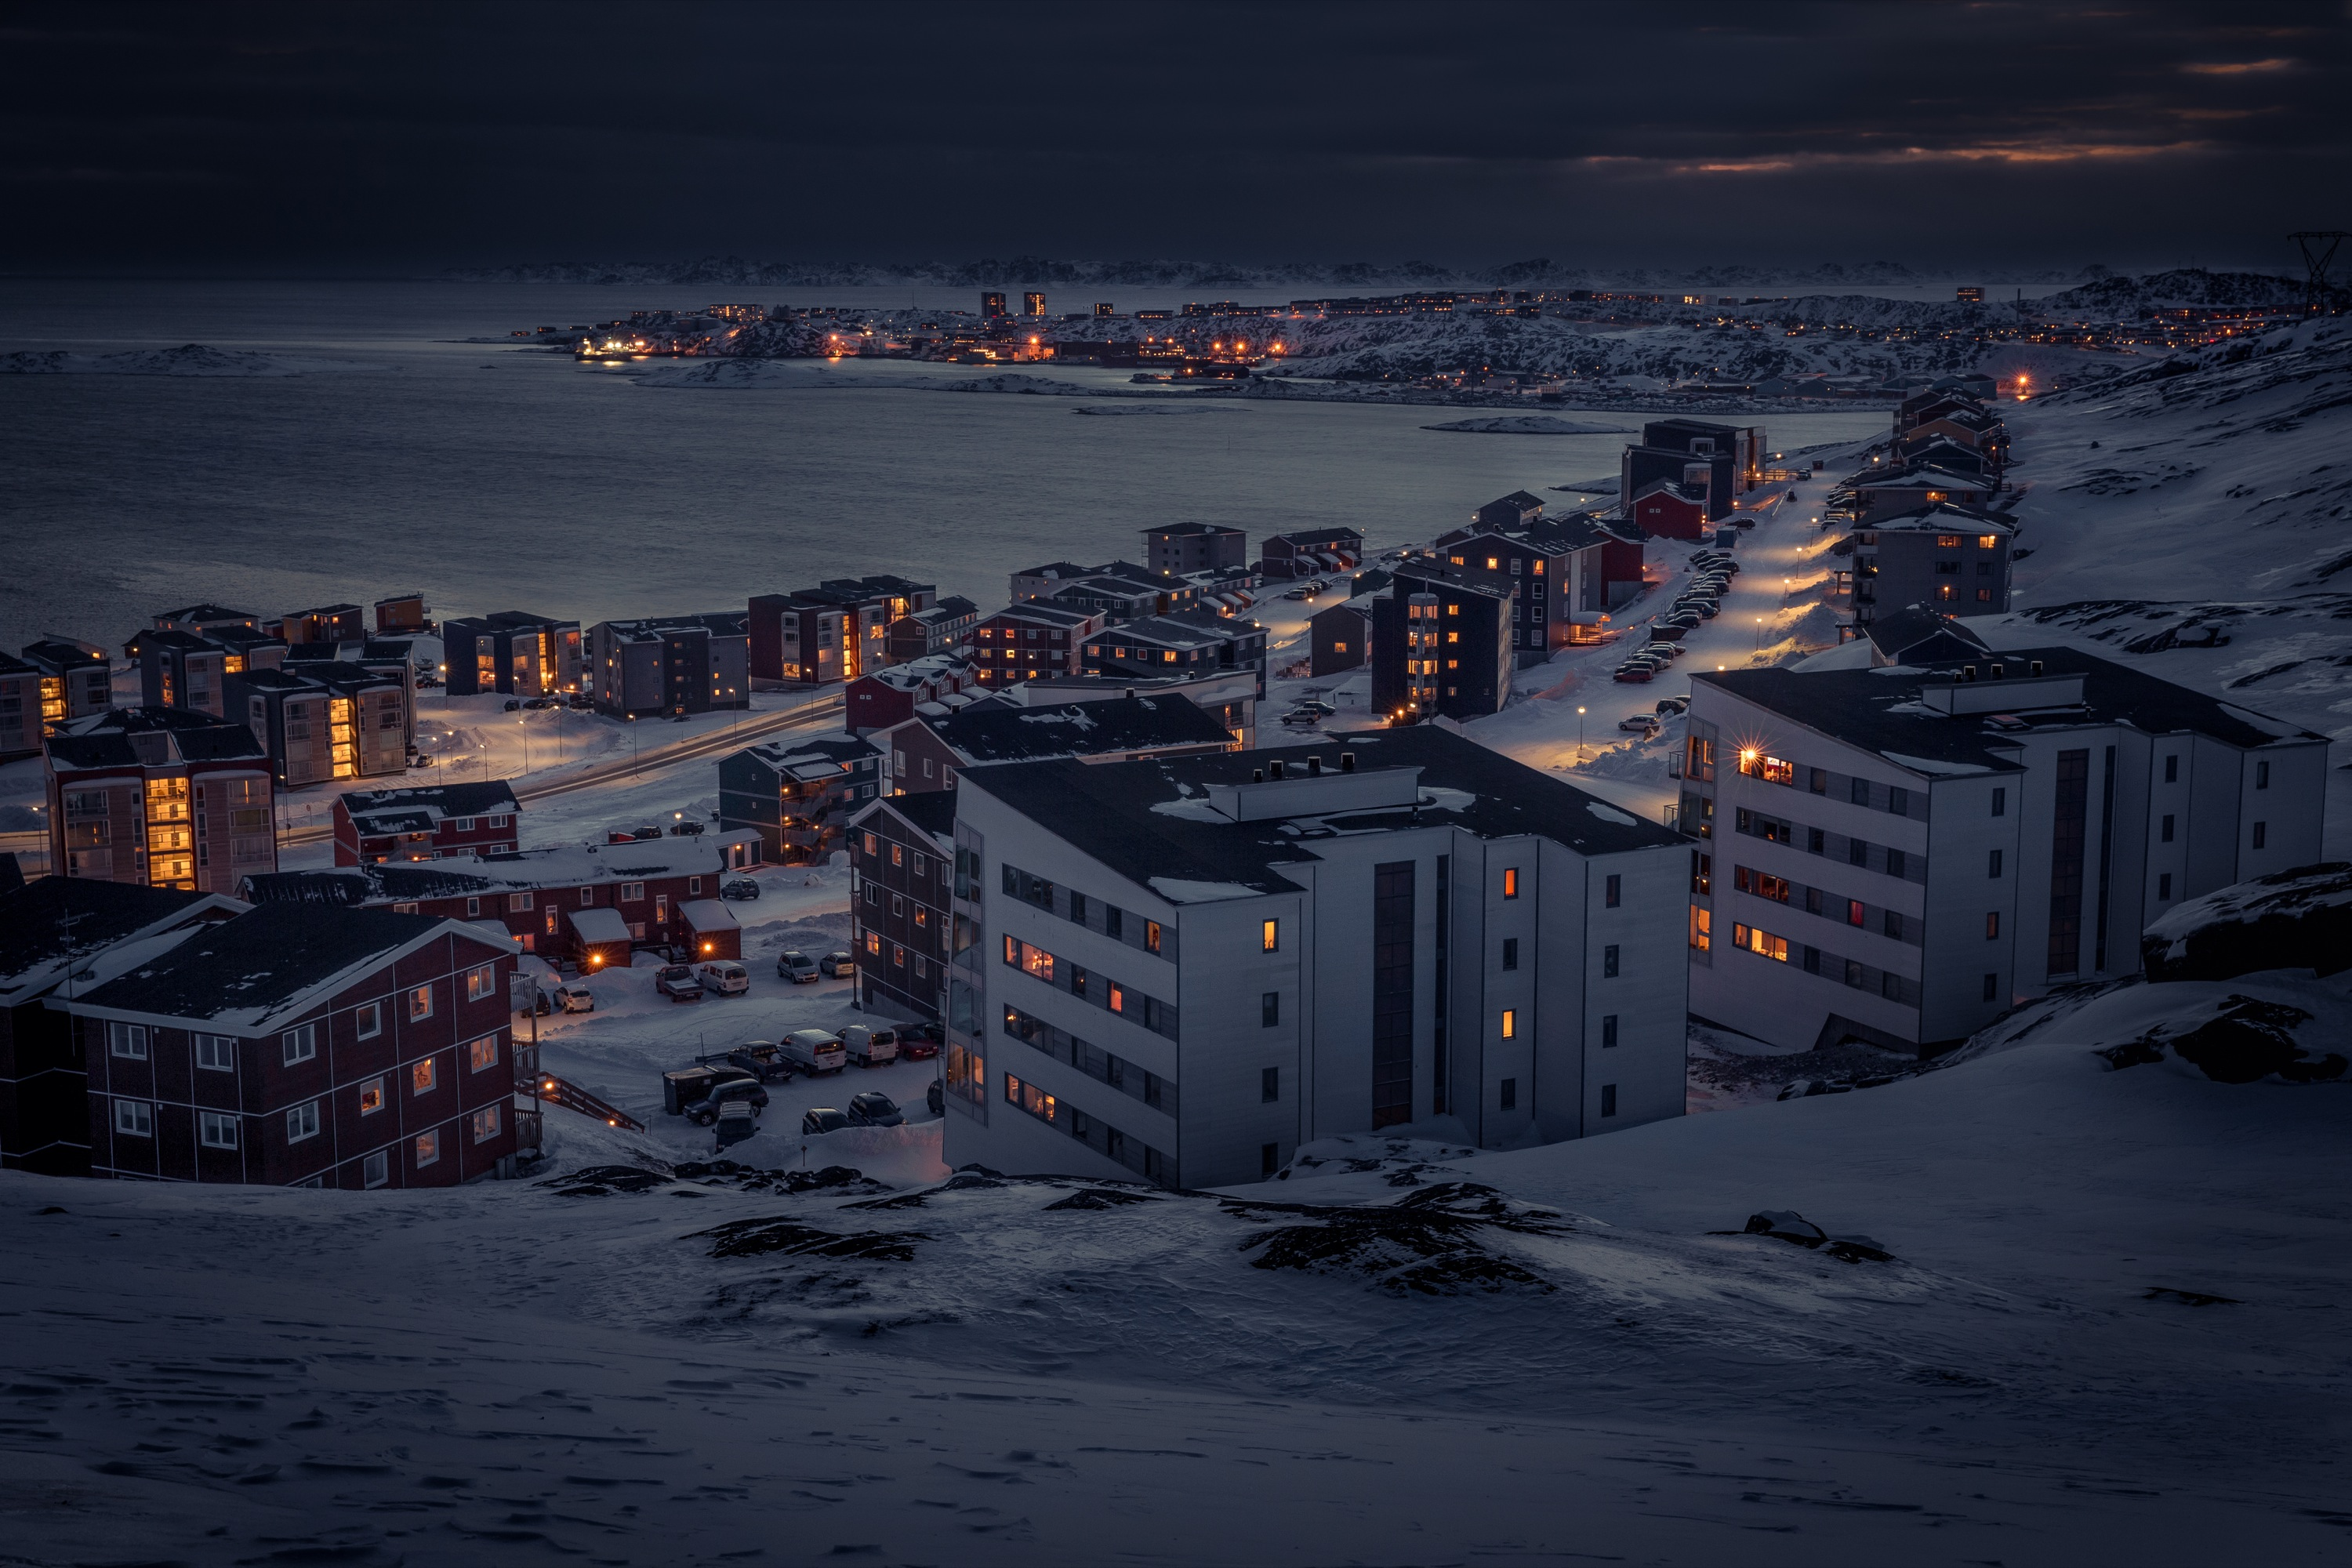 File:Colorful-nuuk2.jpg - Wikimedia Commons